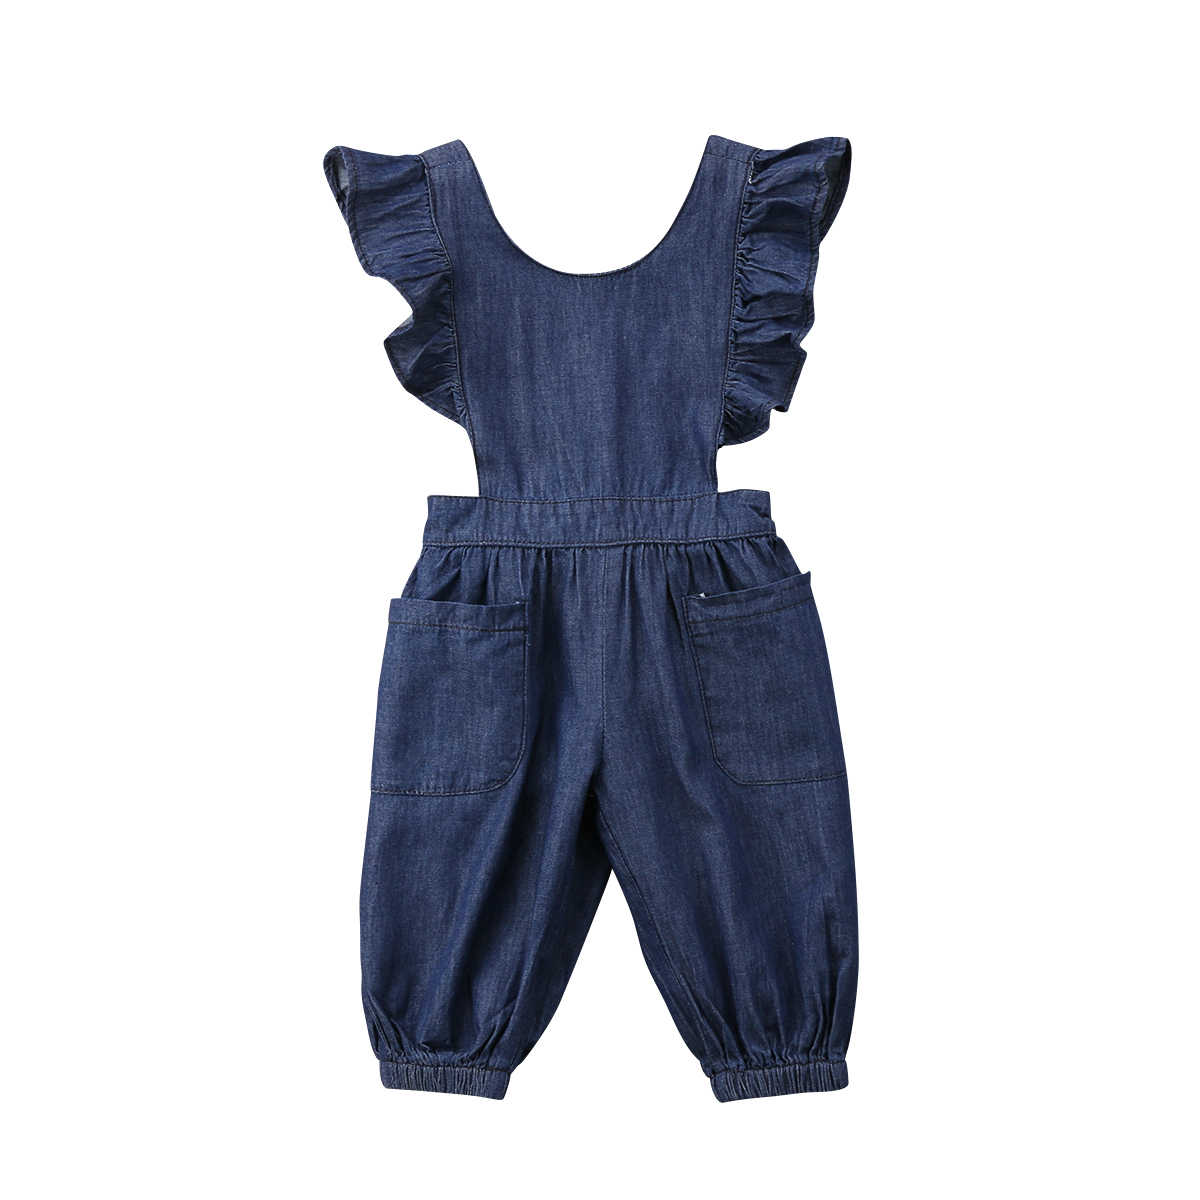 4a2adcf9709 Newborn Infant Baby Girls Denim Overalls Rompers Sleeveless Jumpsuit  Outfits Sunsuit Cute Summer Girl Clothes Backless